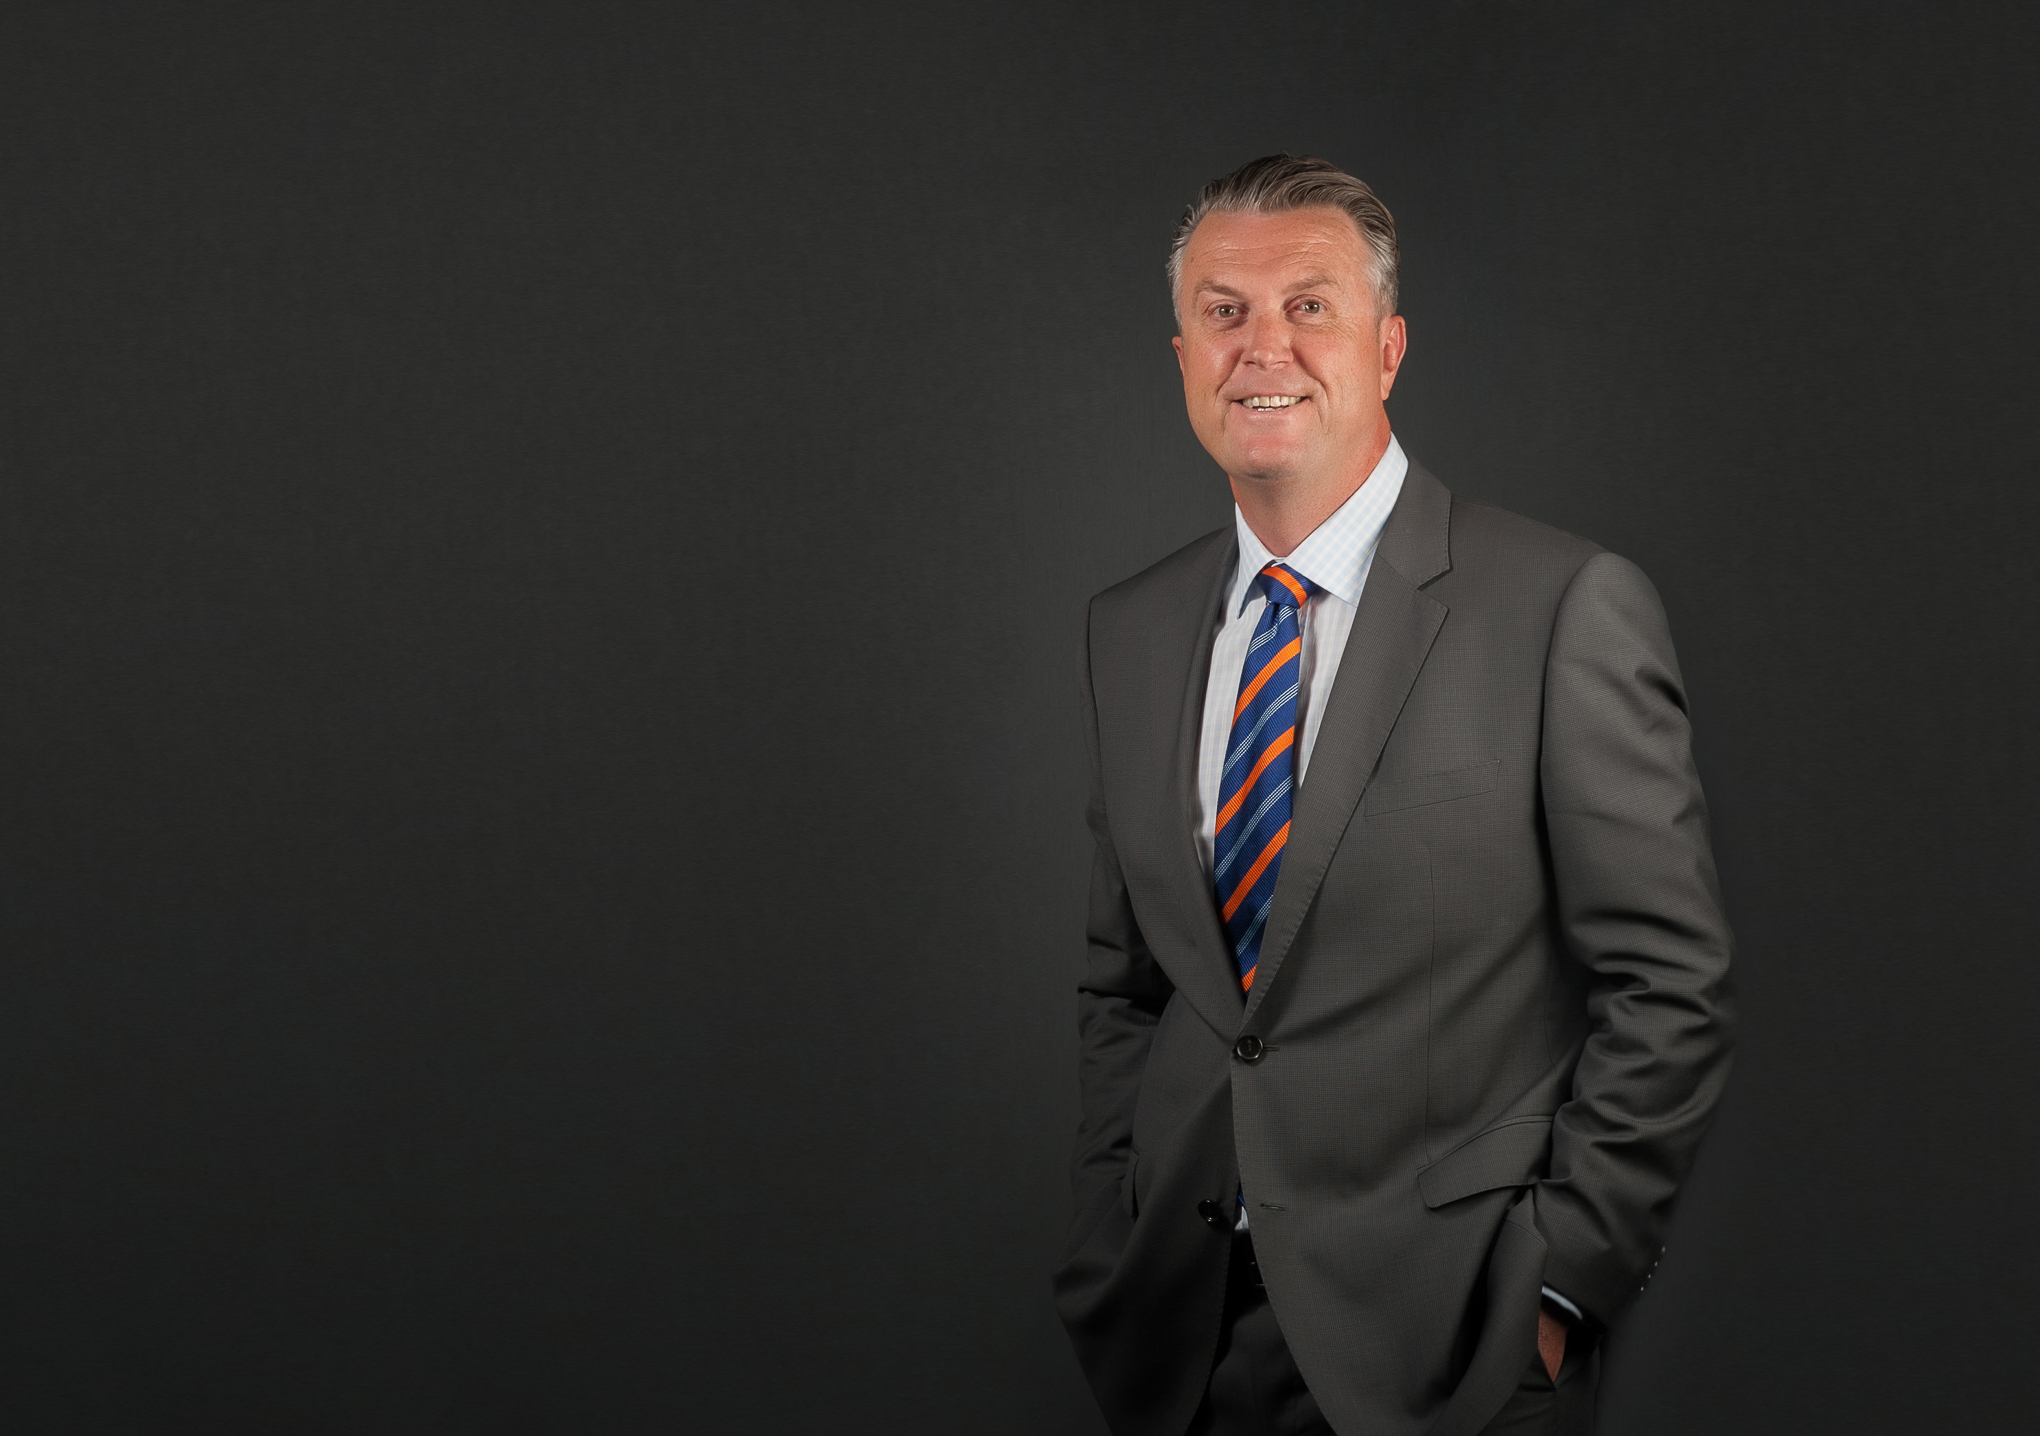 Adelaide corporate photography